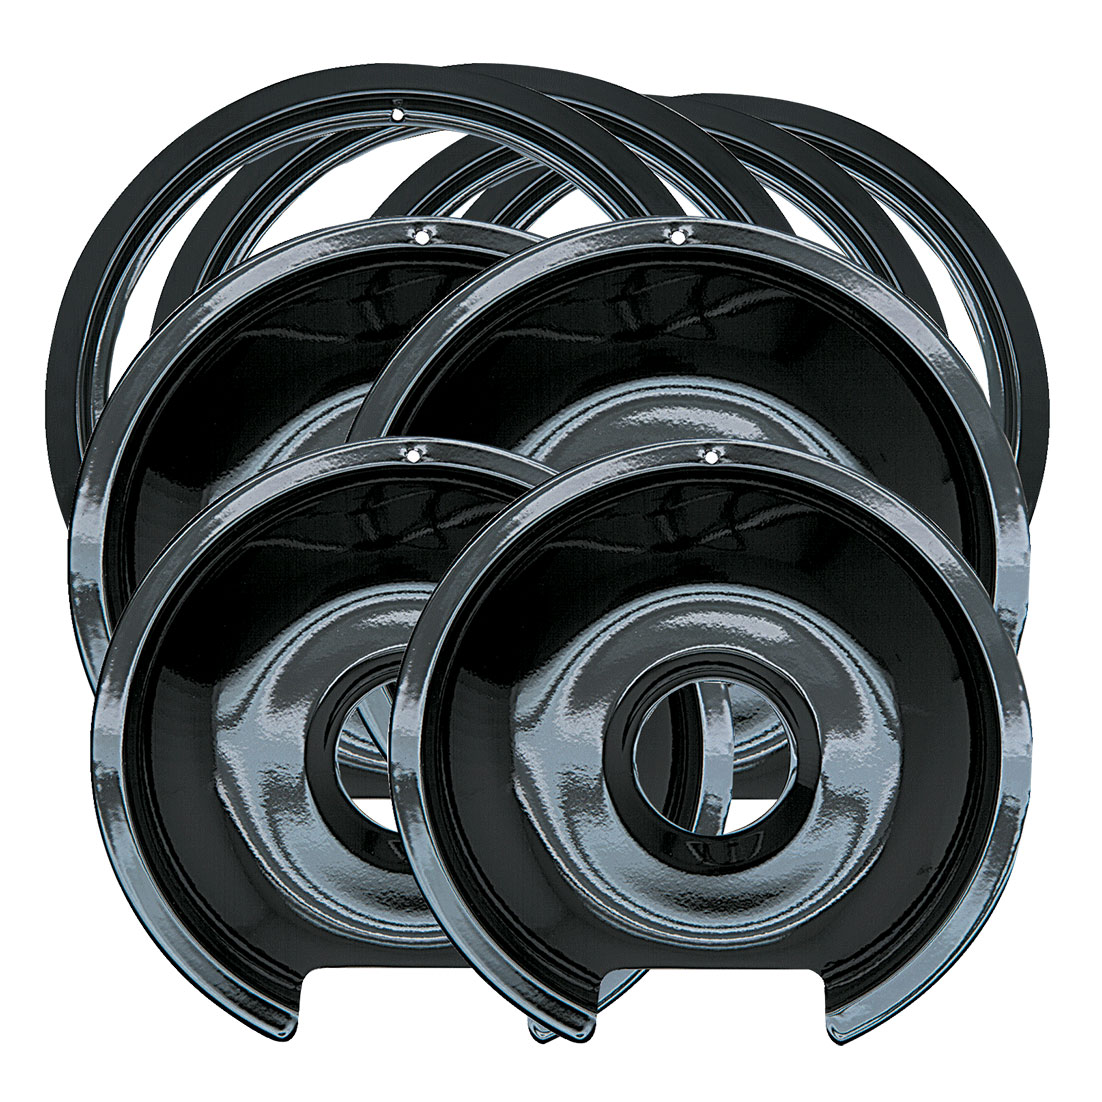 Range Kleen 8-Piece Drip Pan and Trim Ring, Style D fits Hinged Electric Ranges GE/Hotpoint/Kenmore, Black Porcelain